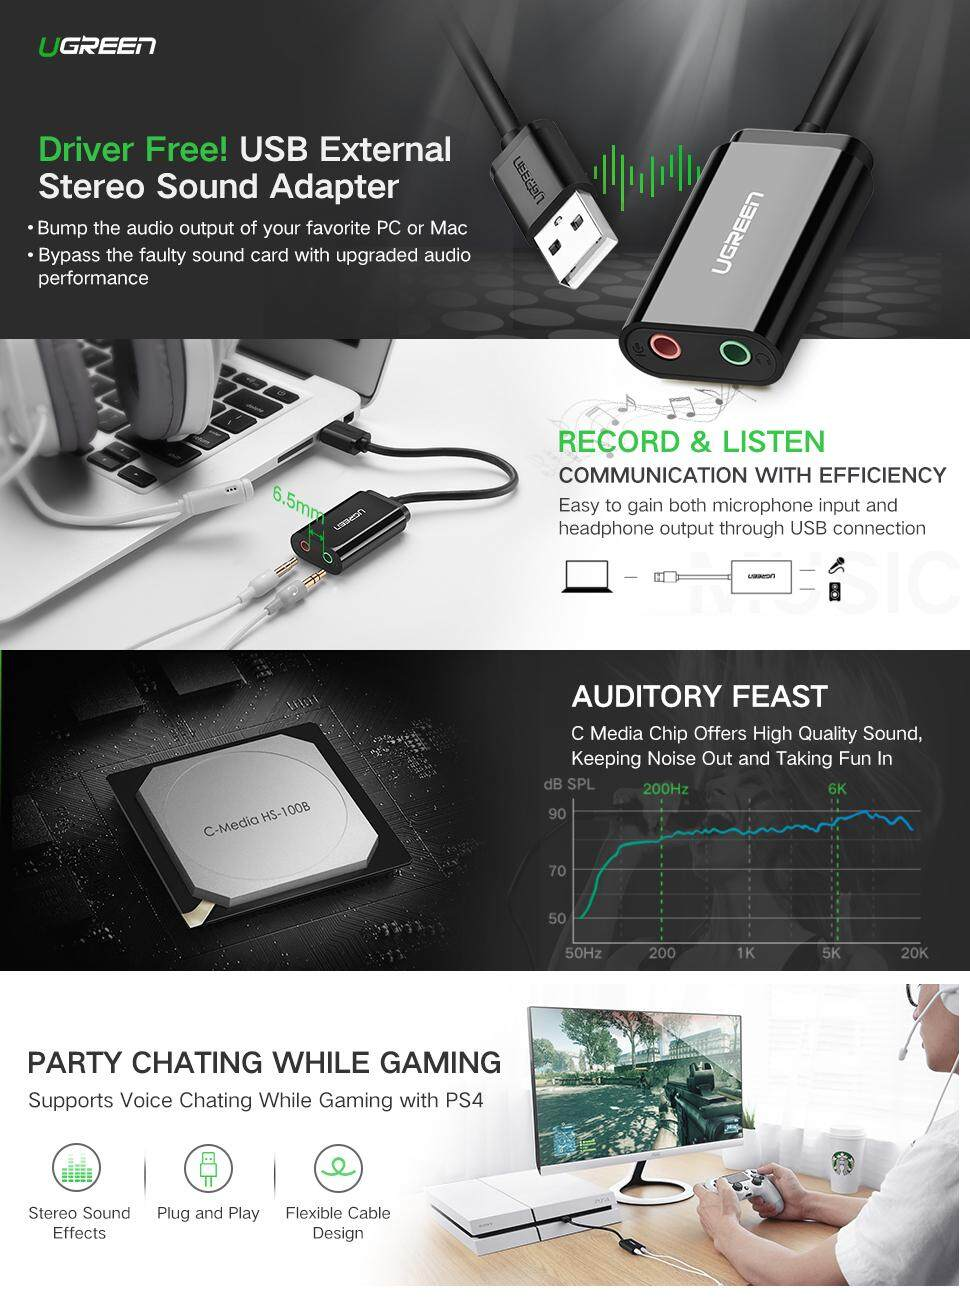 UGREEN USB Audio Adapter External Stereo Sound Card With 3 5mm Headphone  And Microphone Jack For Windows, Mac, Linux, PC, Laptops, Desktops, PS4 Pro